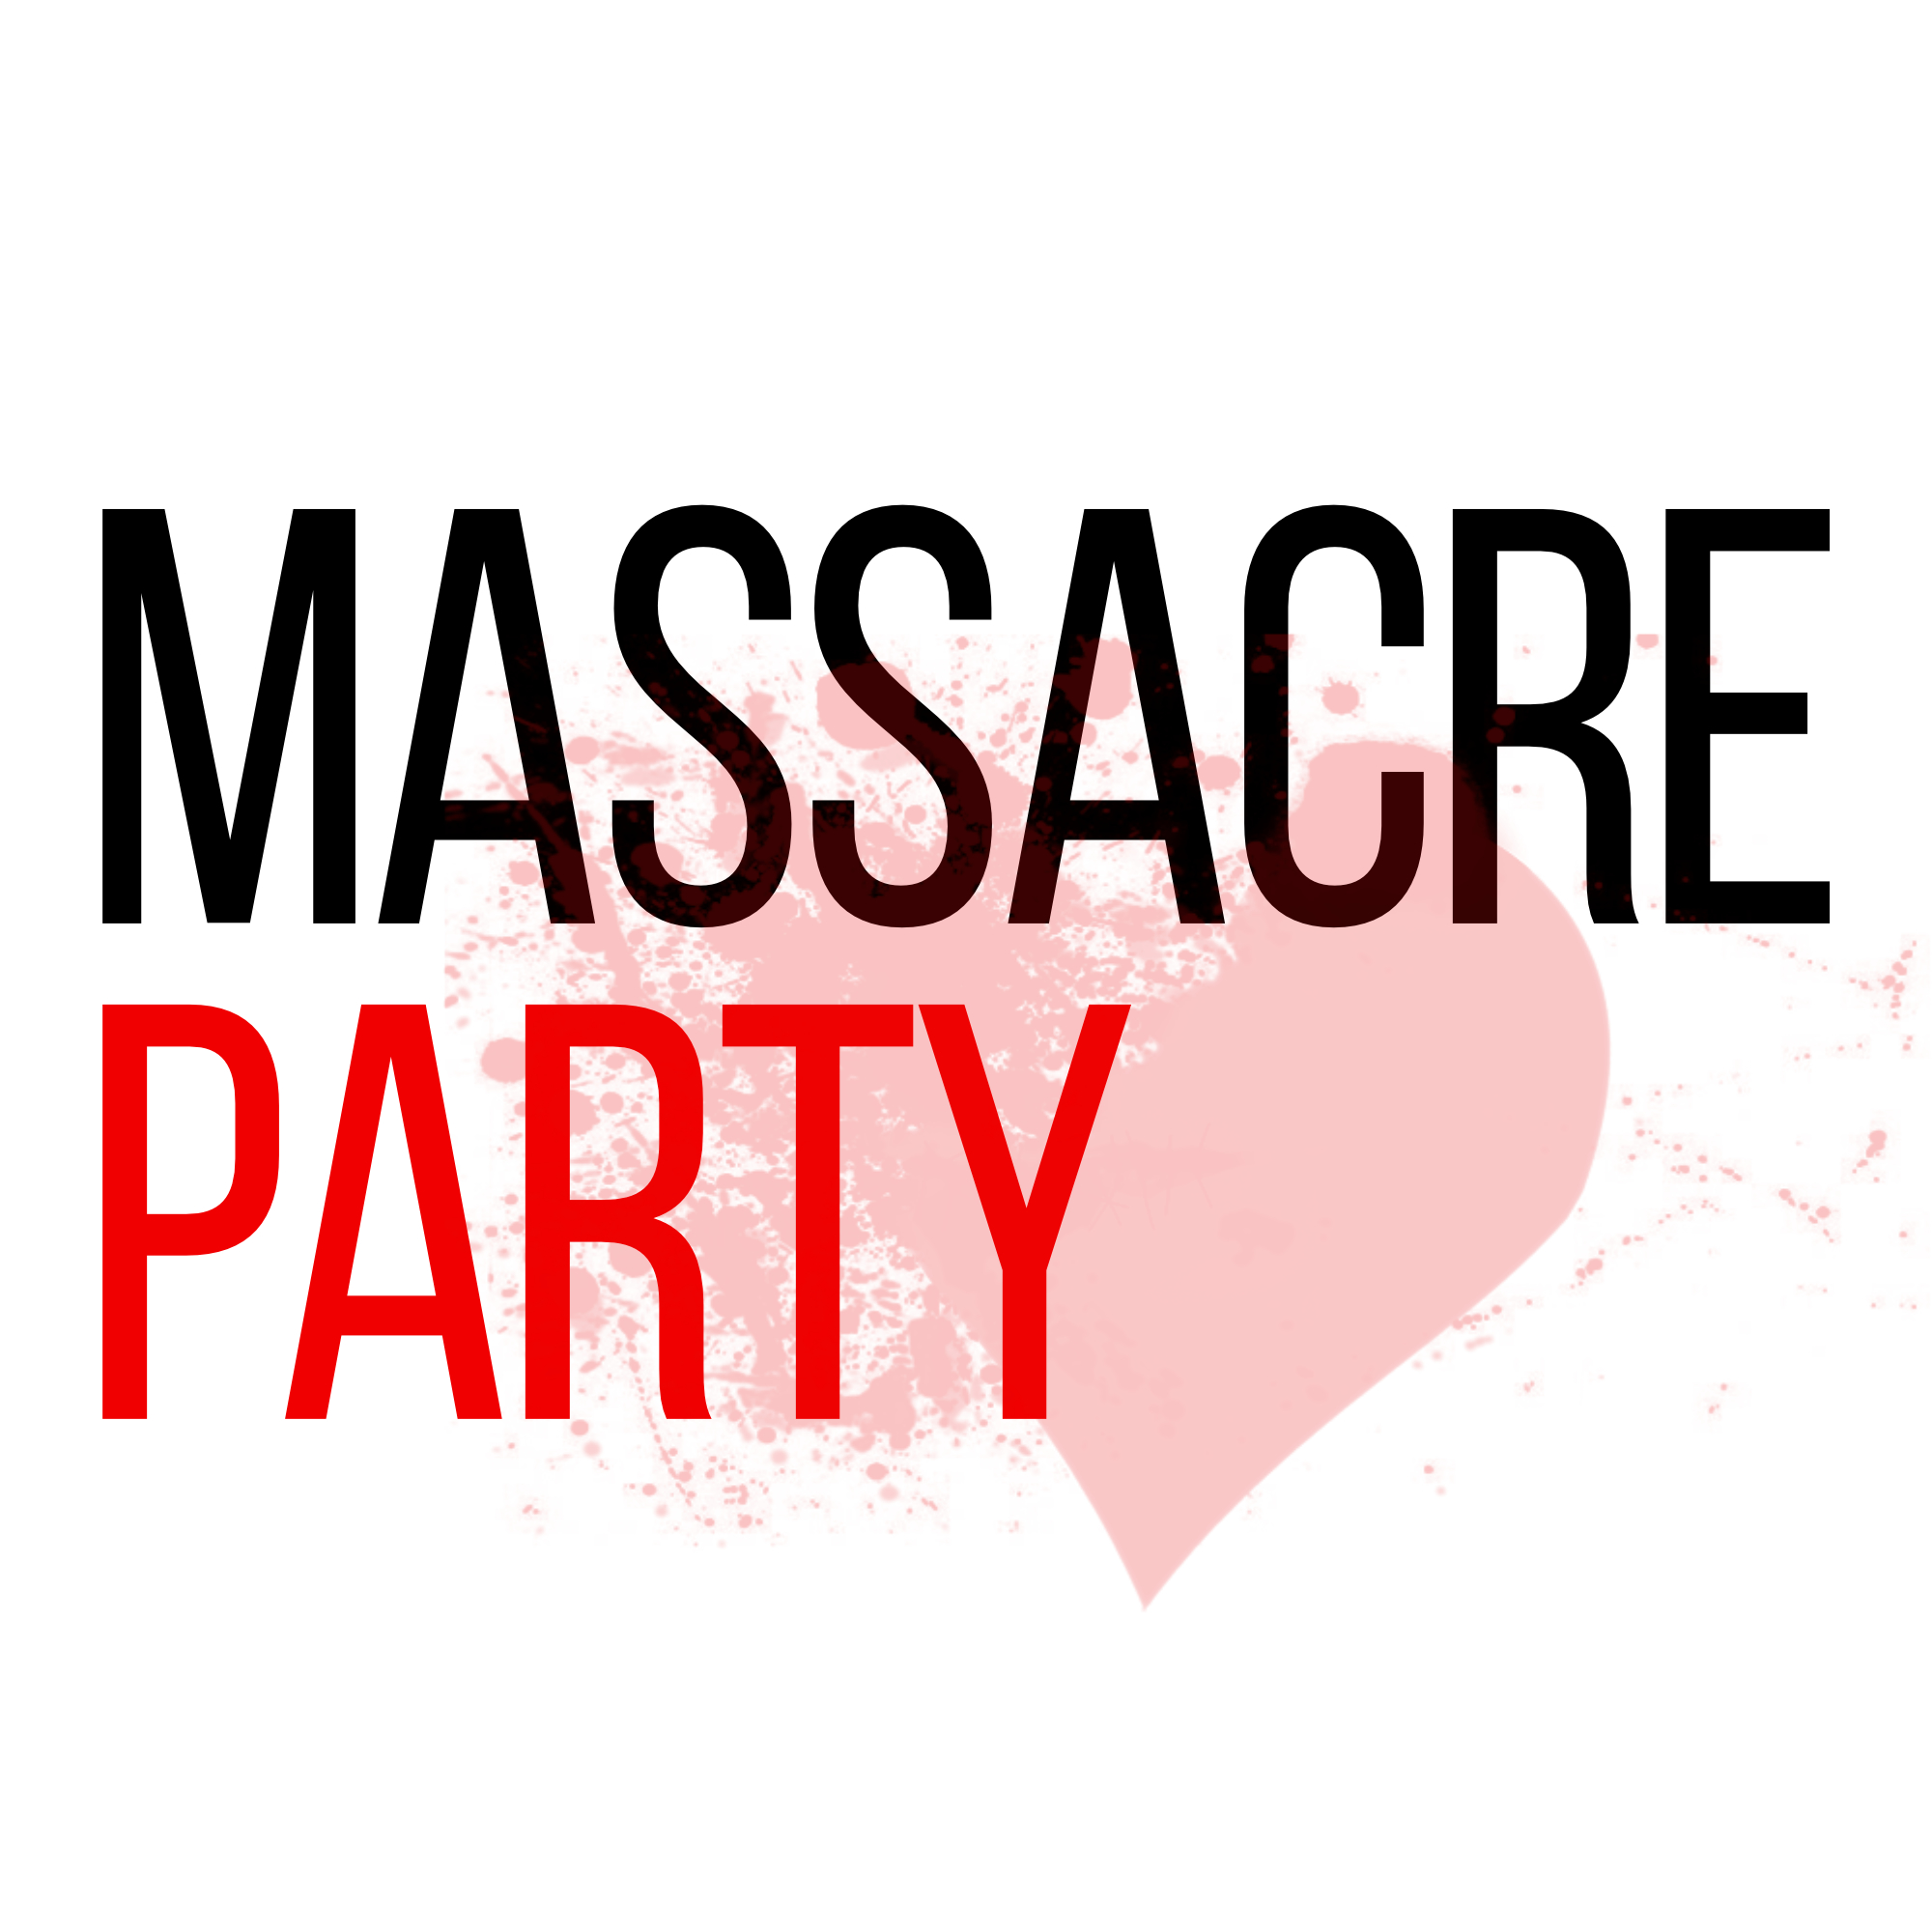 Massacre Party